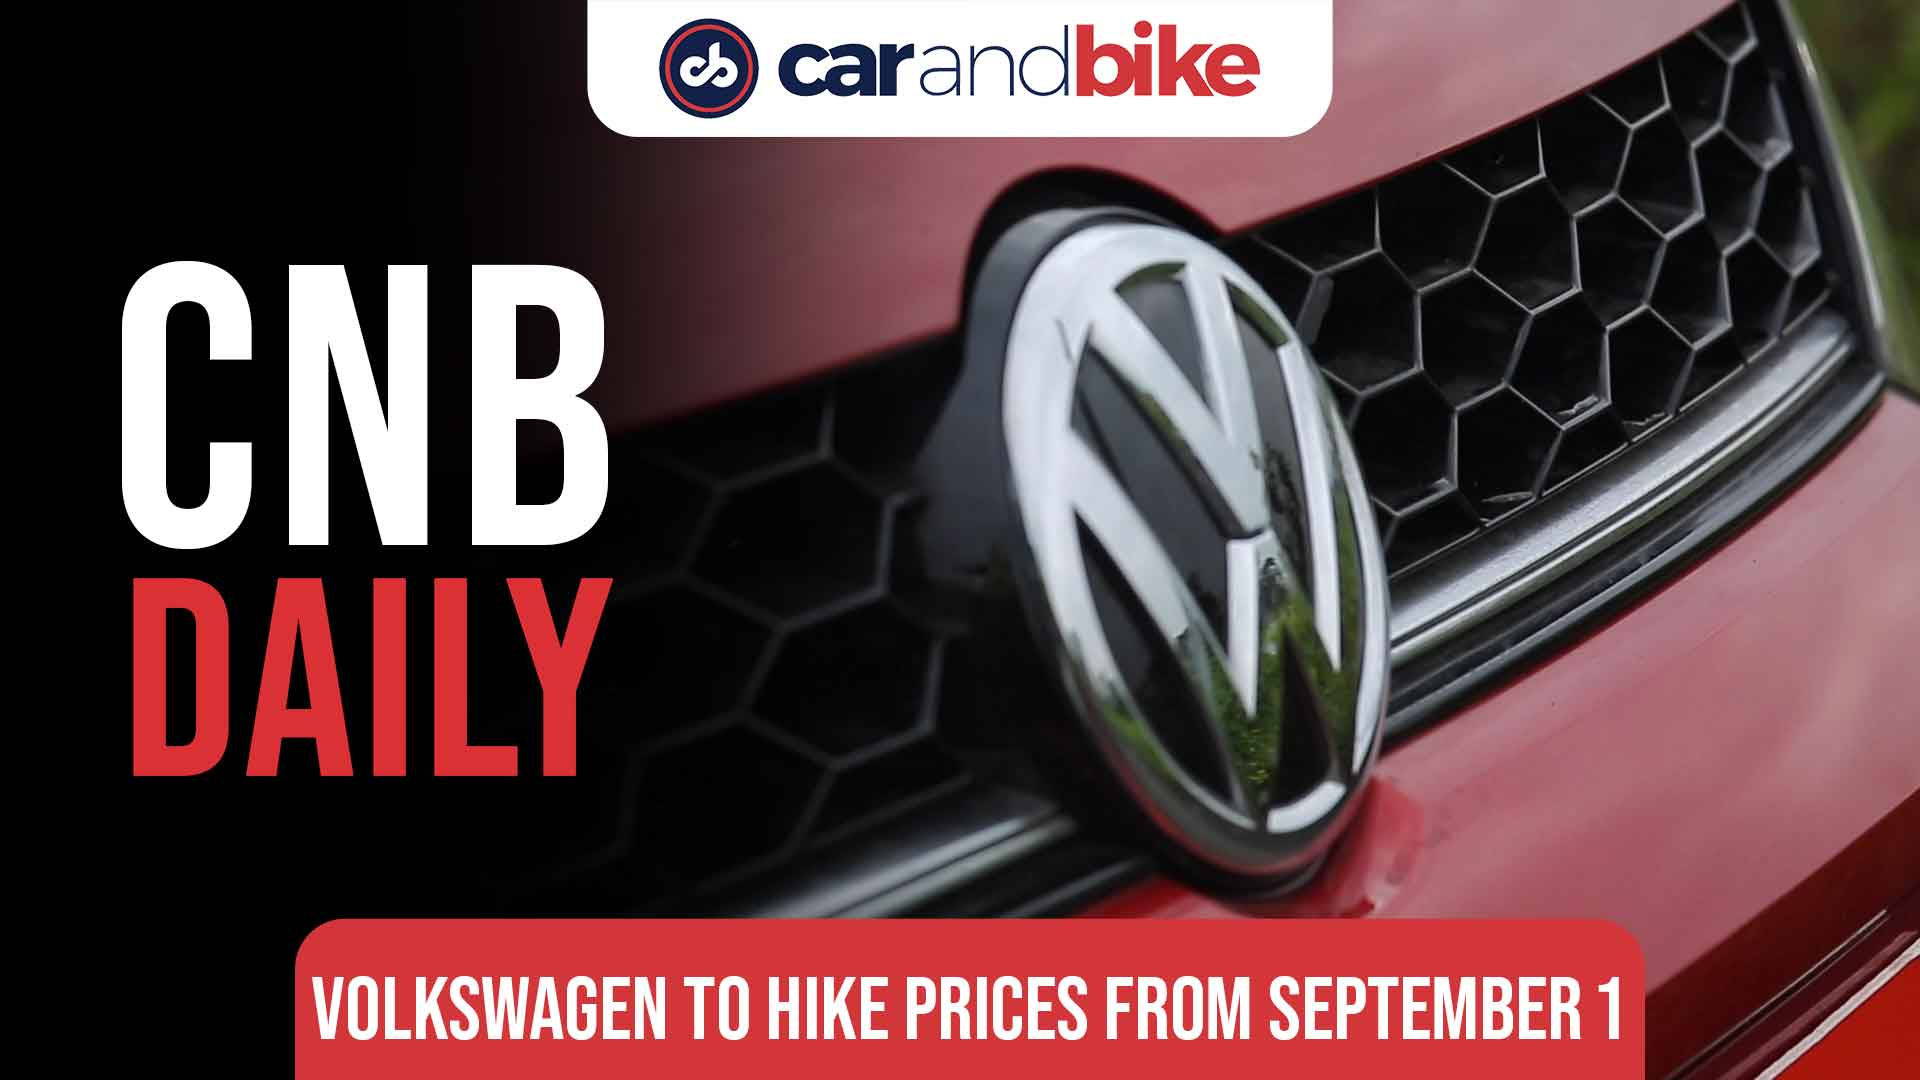 Volkswagen to hike prices from September 1, 2021